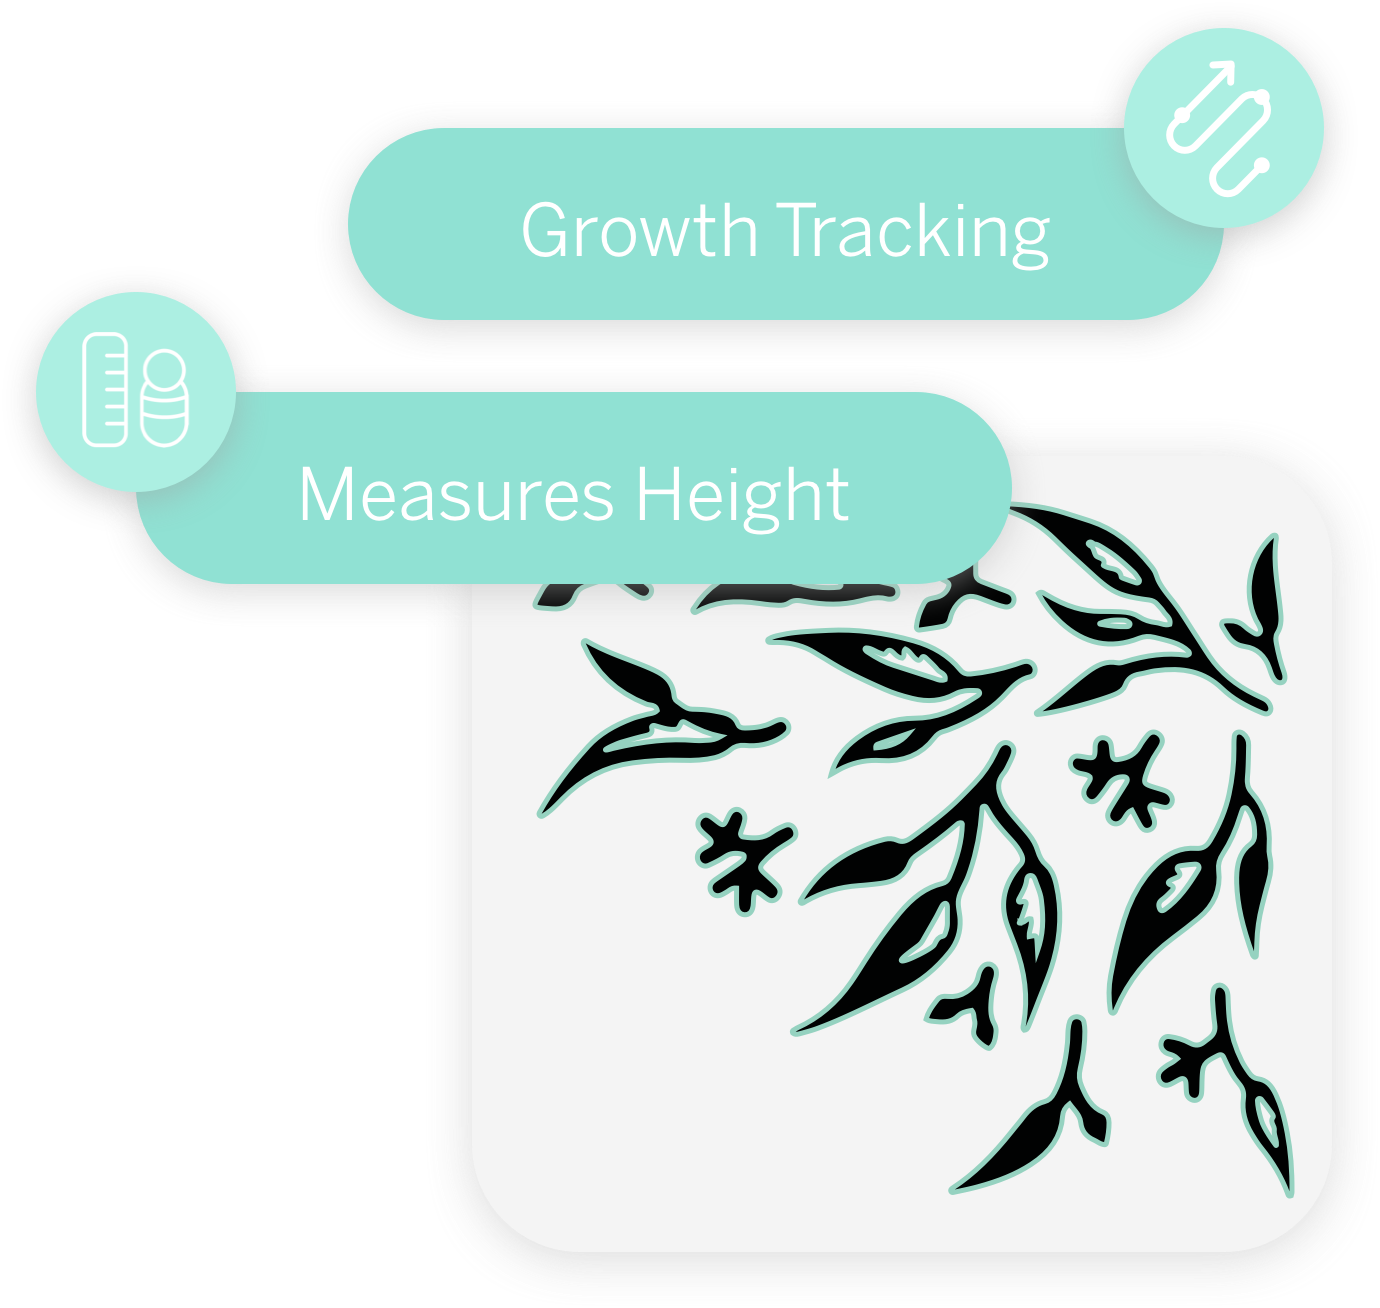 Growth Tracking, Measure Height